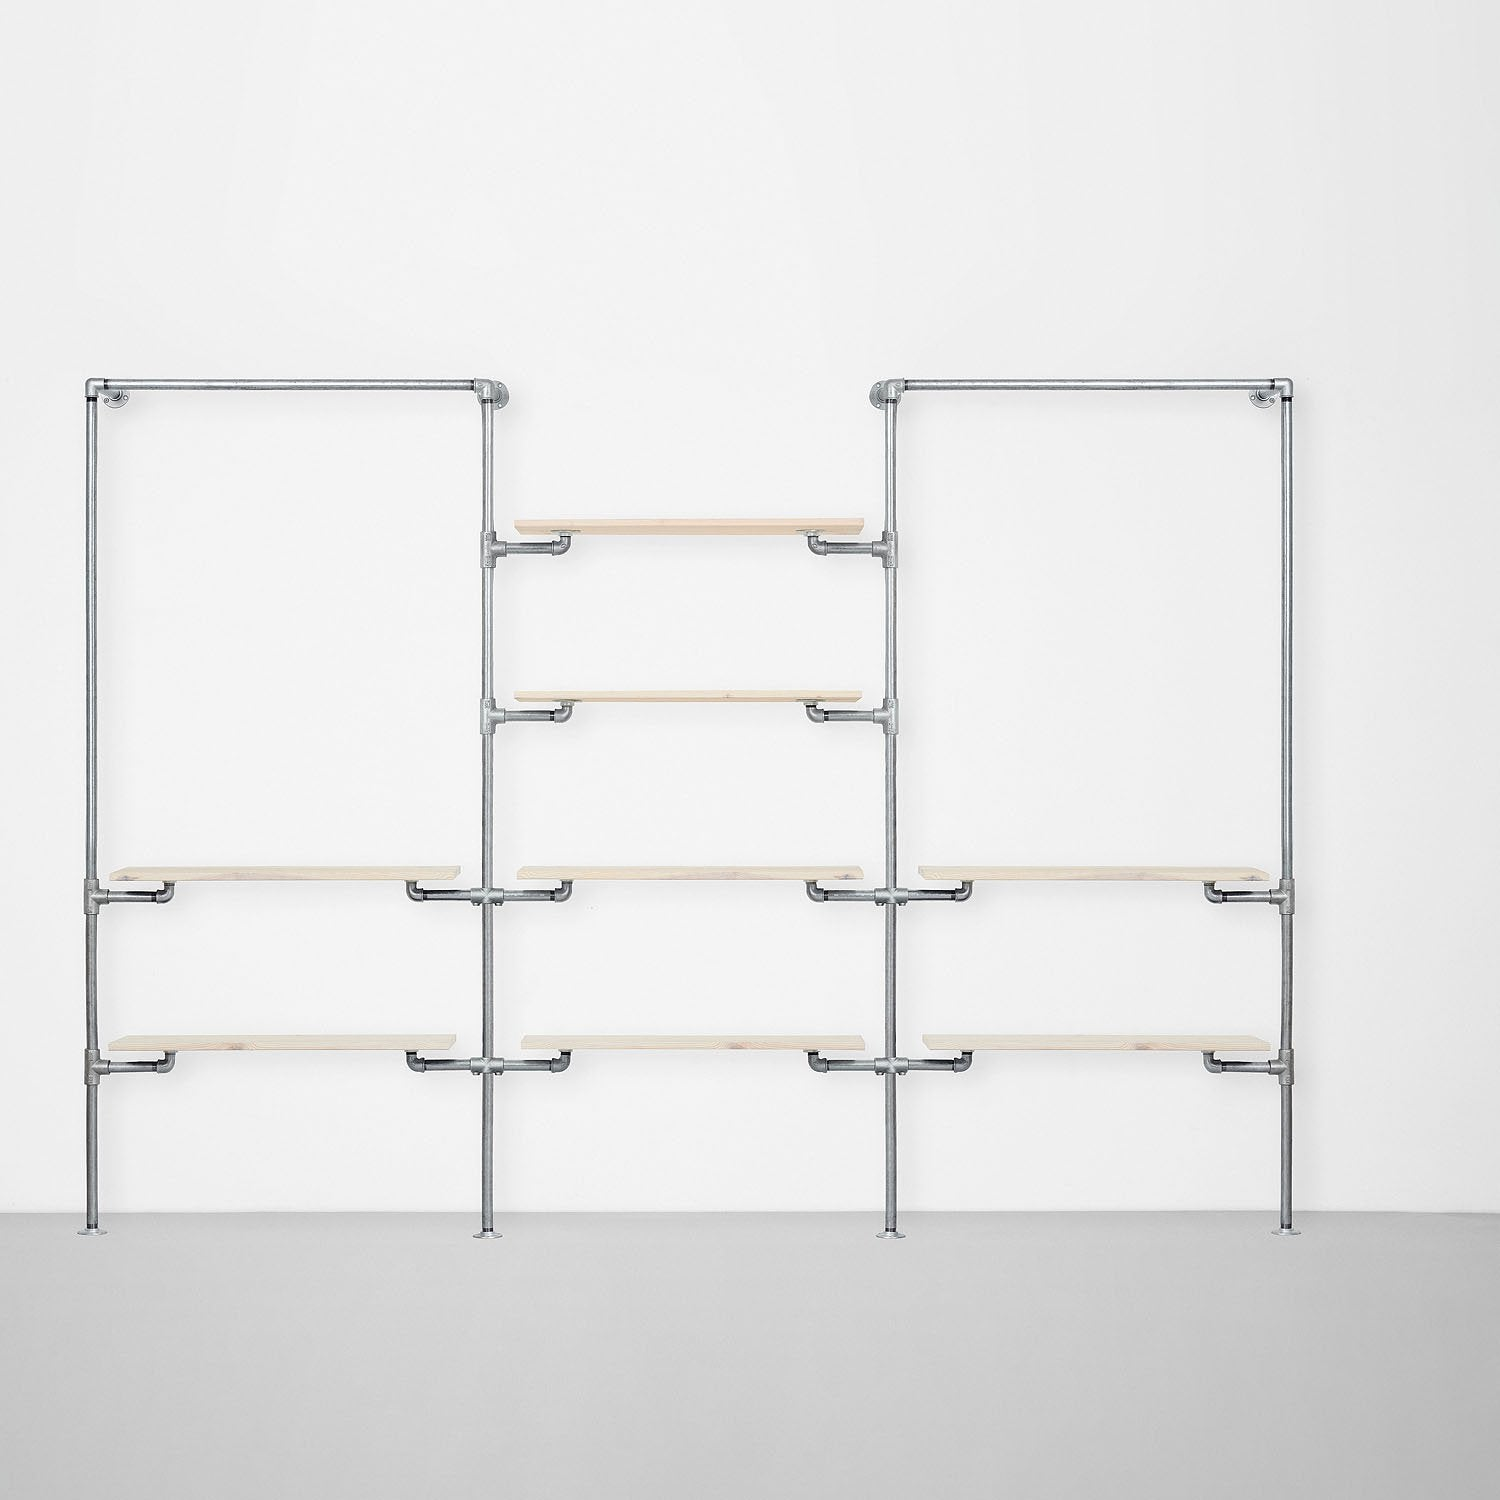 The Walk-In 3 row wardrobe system - (1 rail + 2 shelves / 4 shelves / 1 rail + 2 shelves)